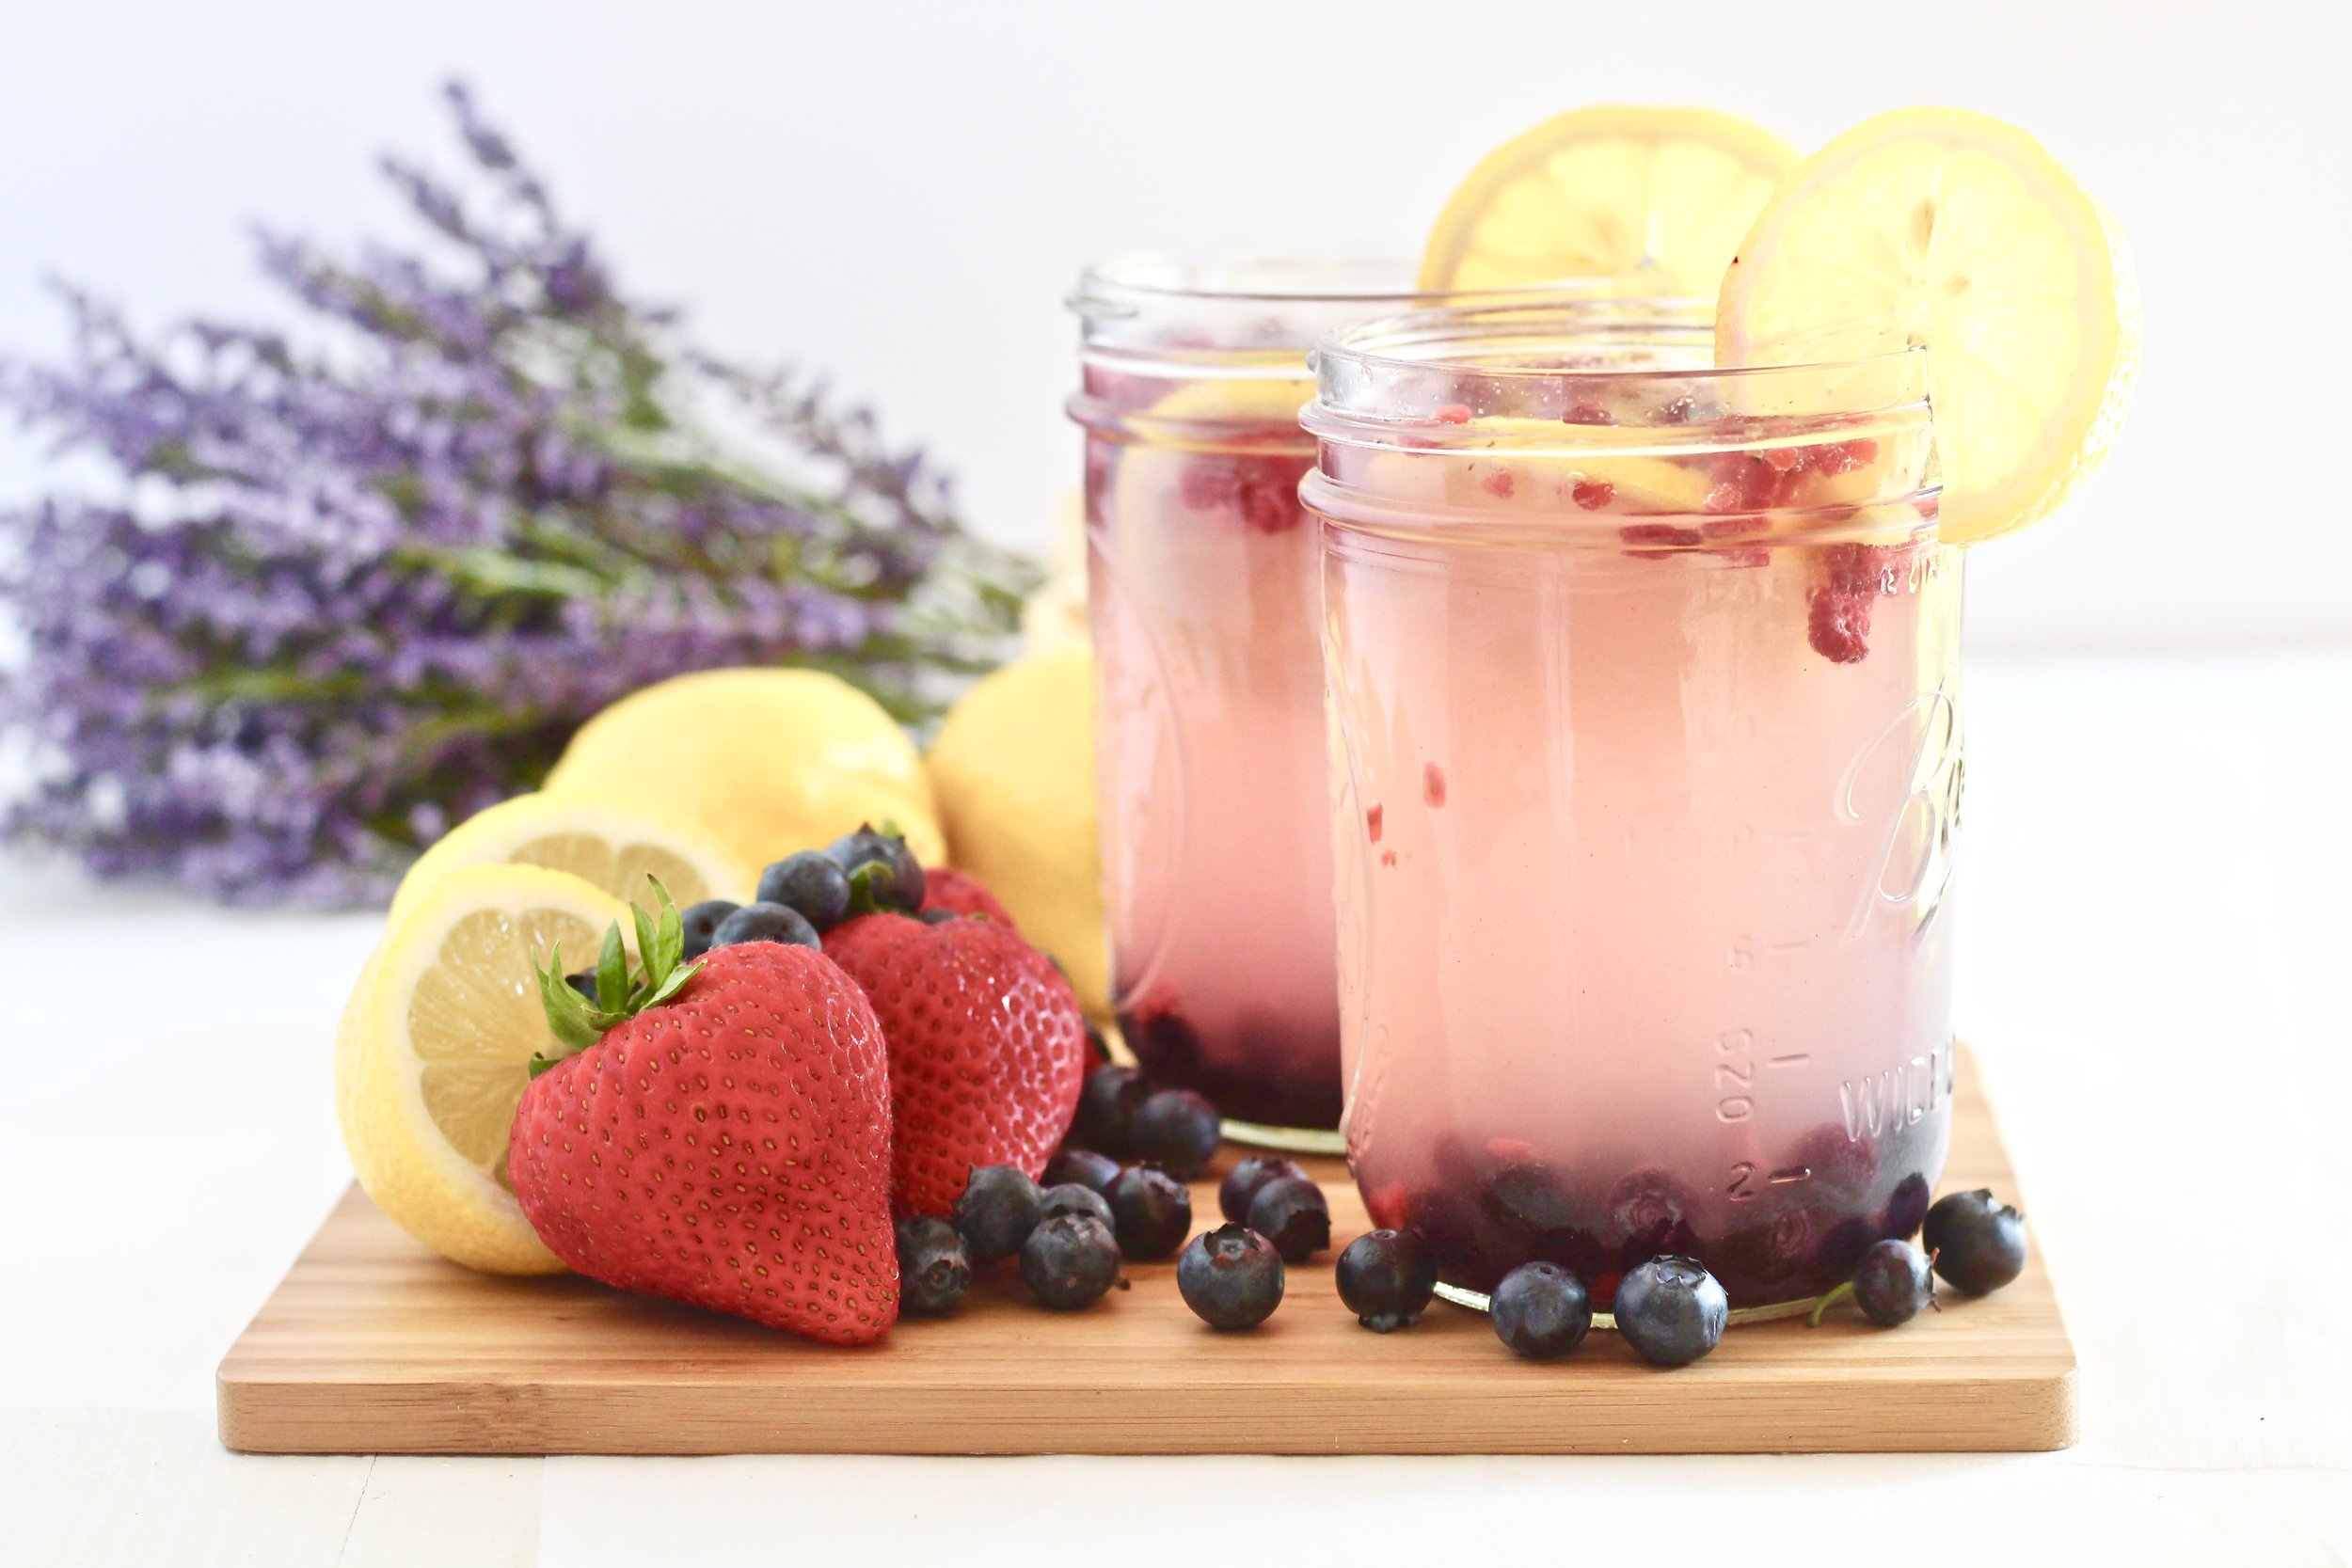 Easy Last Minute 4th of July Cookout Recipes; Pictured:  Lavender Berry Sparkling Lemonade  by Milk & Honey Nutrition